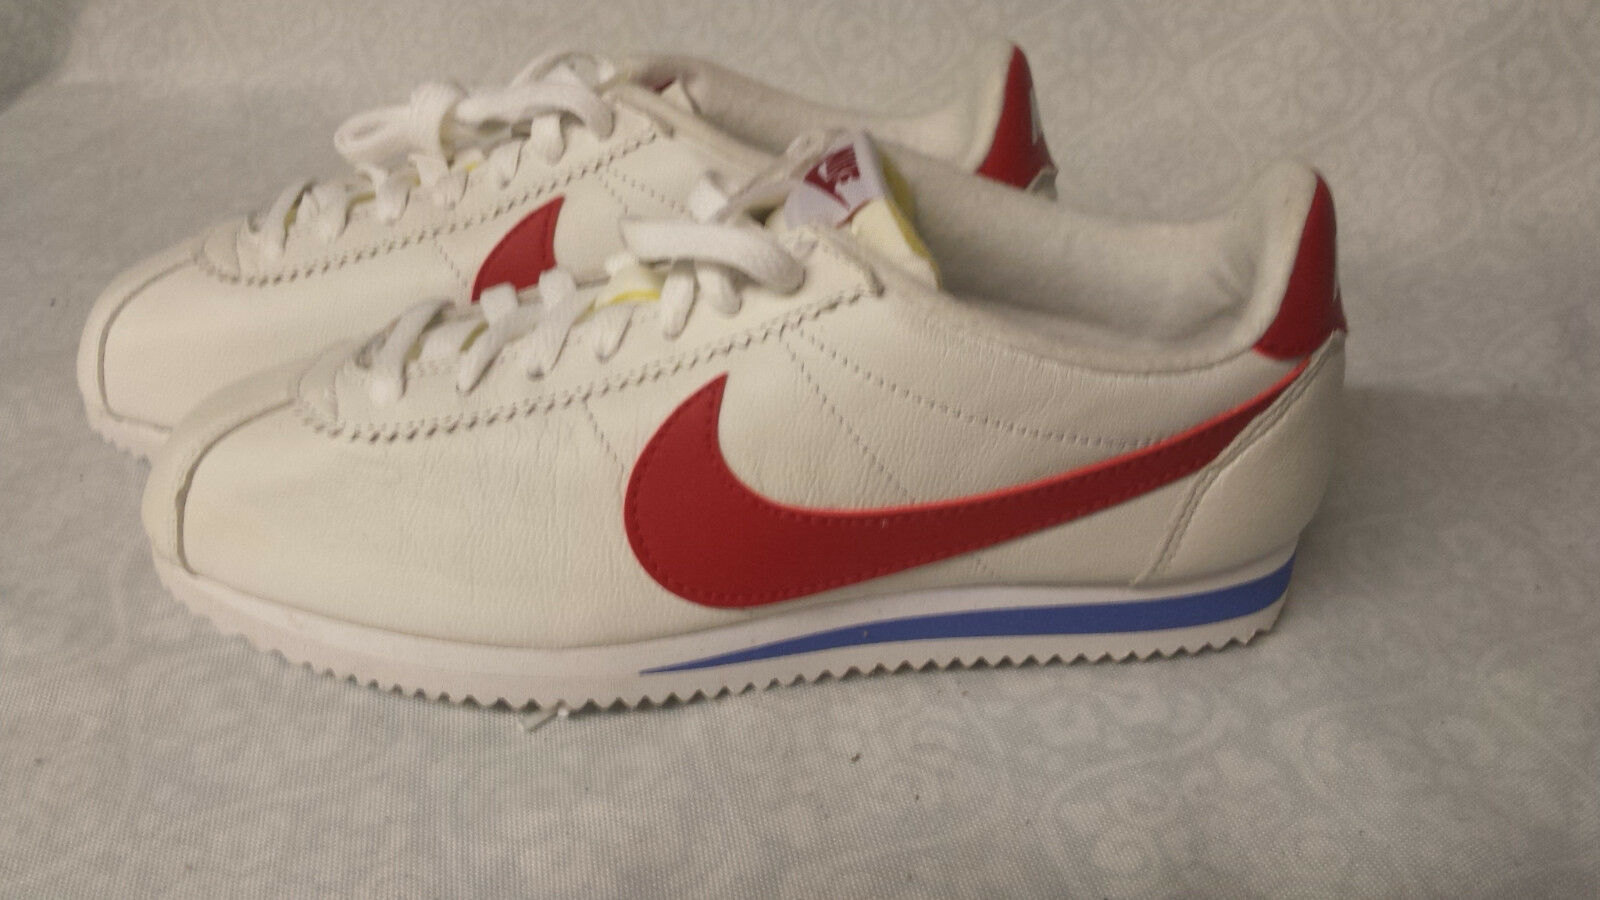 NIKE CORTEZ BASIC LEATHER  size 7 Forrest Gump Red White Blue 882254-164